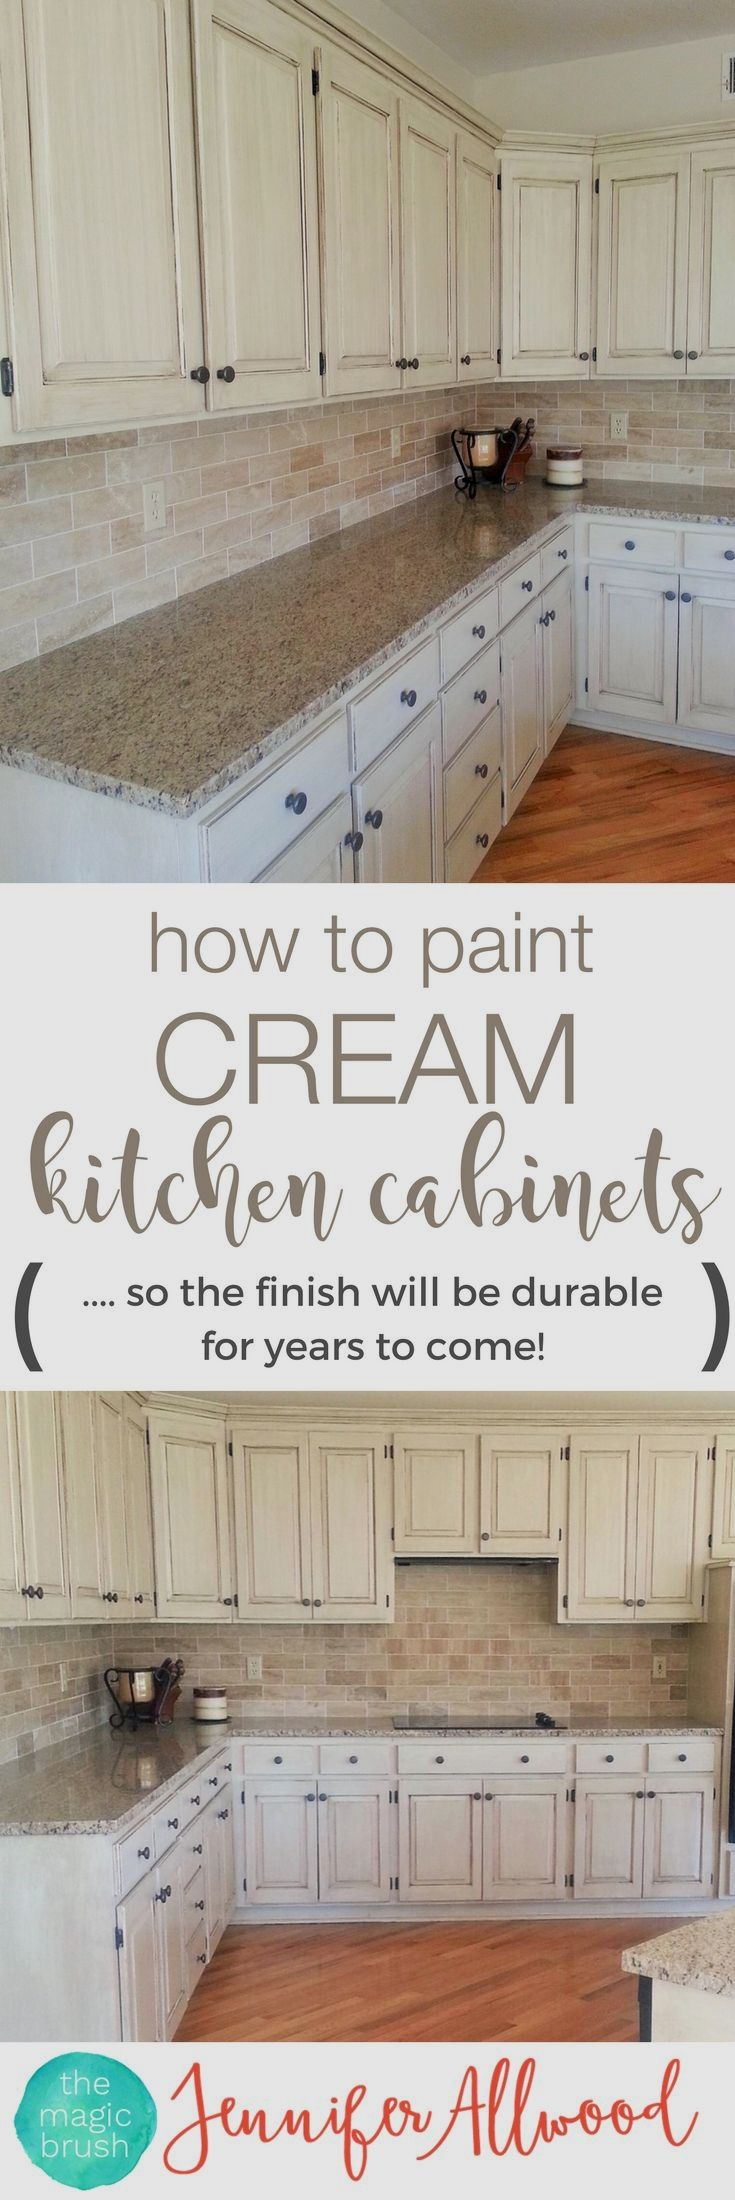 How to paint cream kitchen cabinets so the finish will be durable